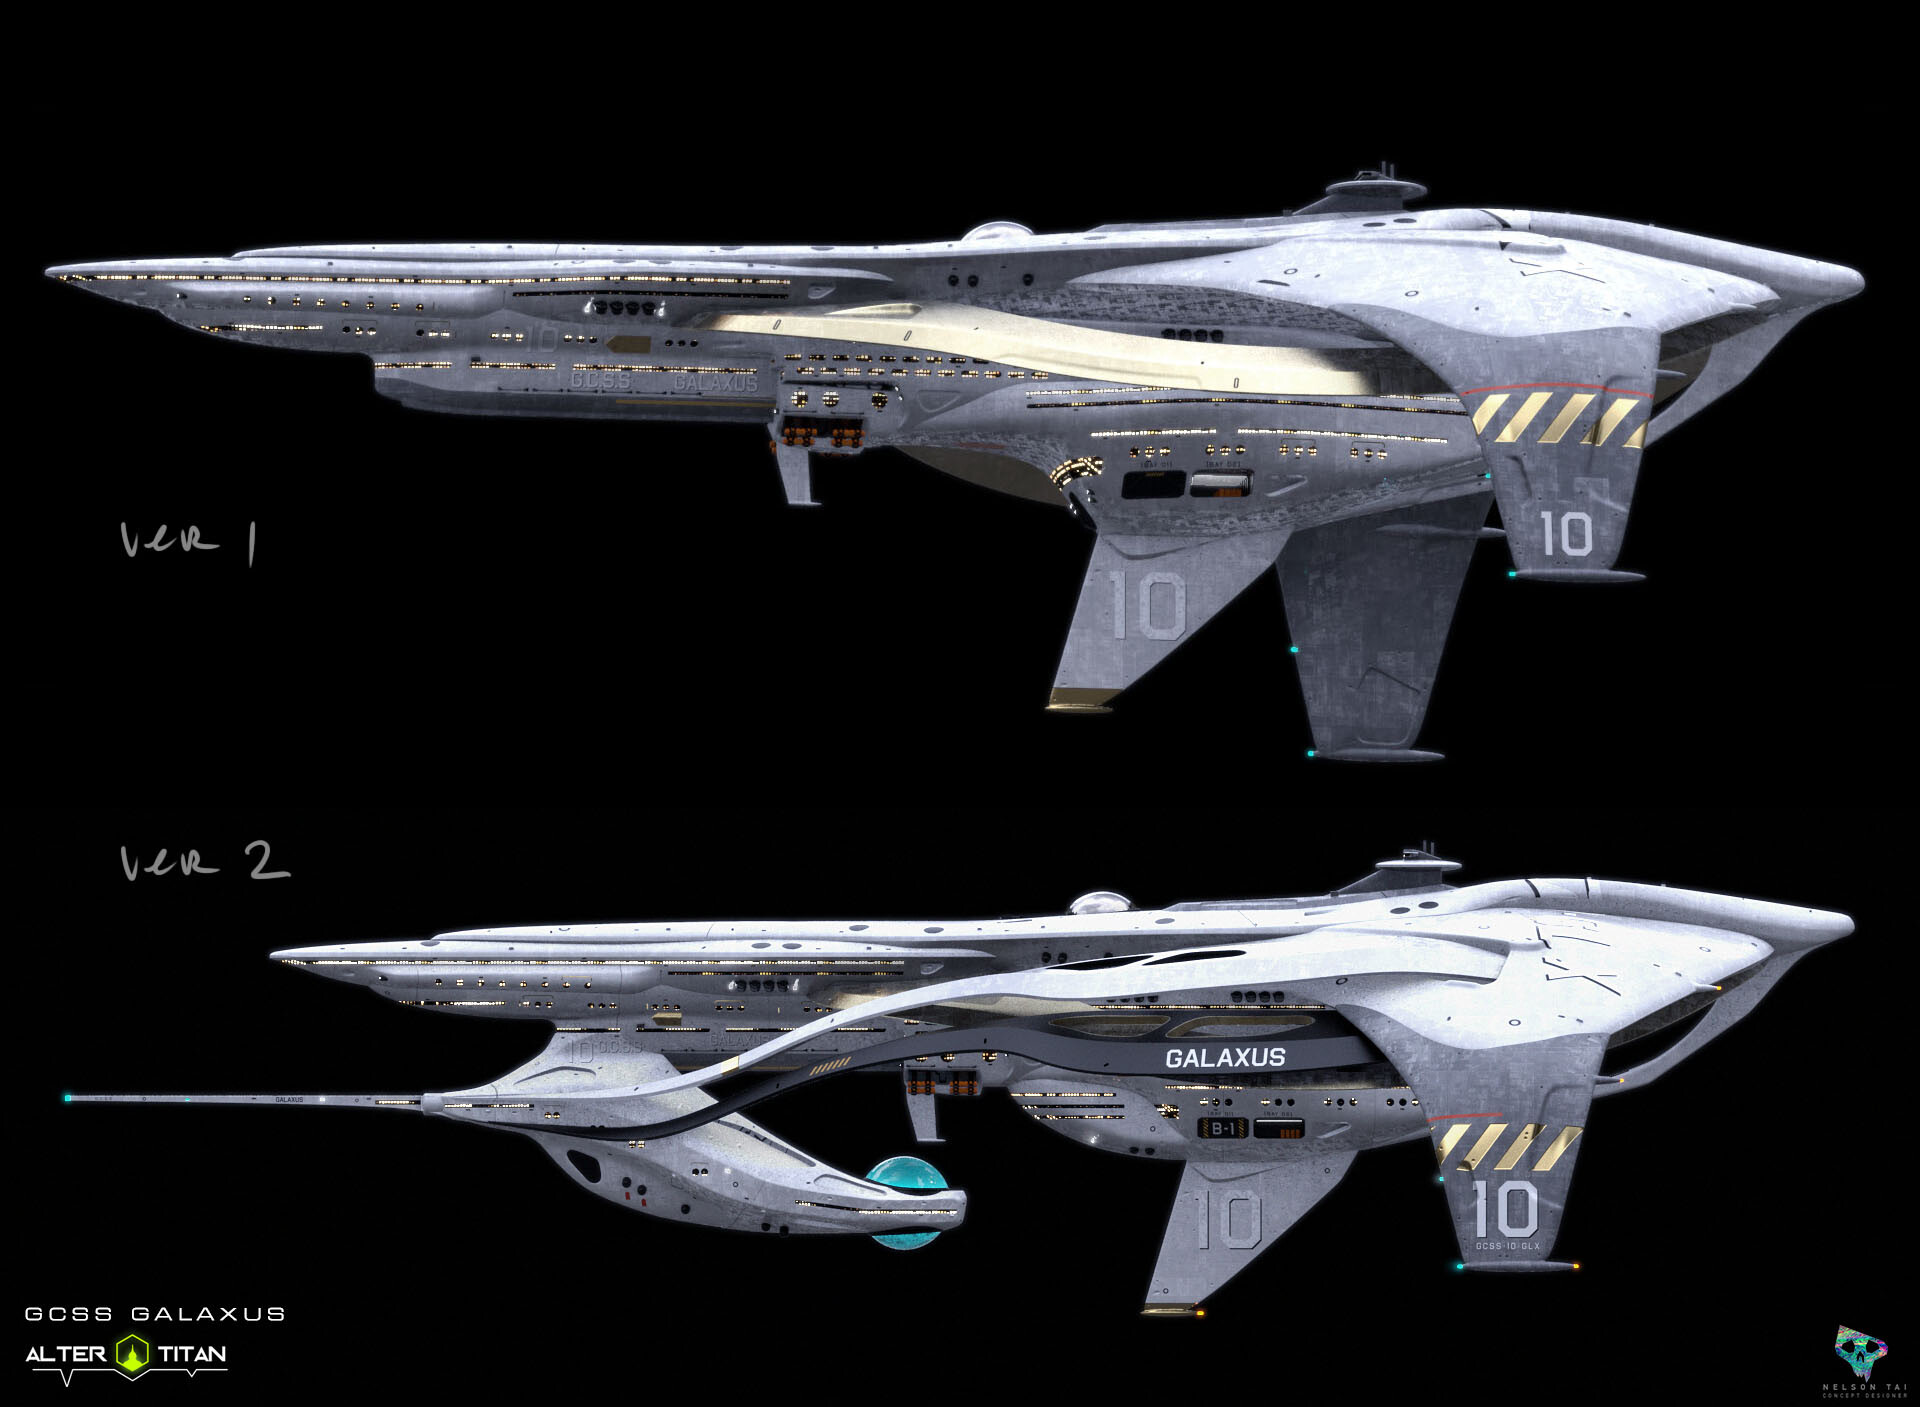 The carrier ship had less sections at first. Added more as client wanted more areas for Titans to explore.